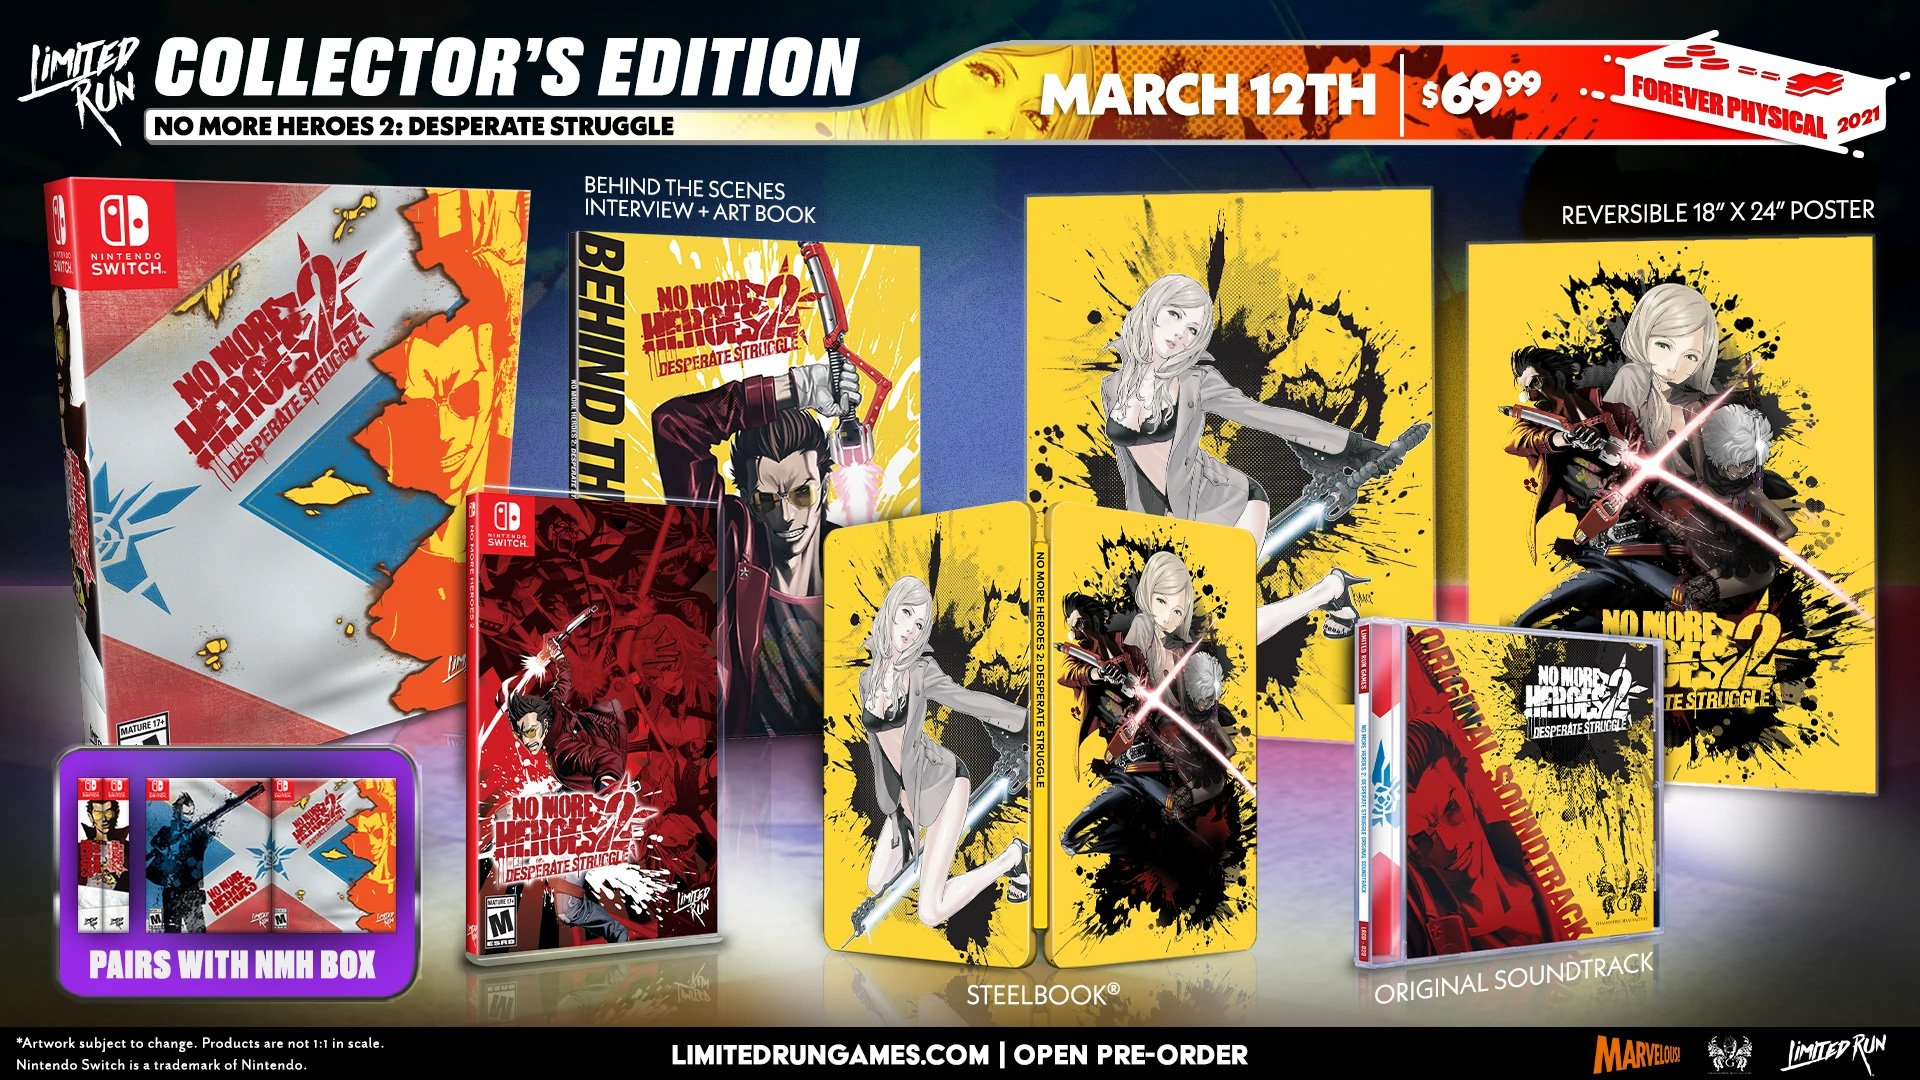 Limited Run's No More Heroes 2 Switch Collector's Edition goes on sale March 12, 2021.